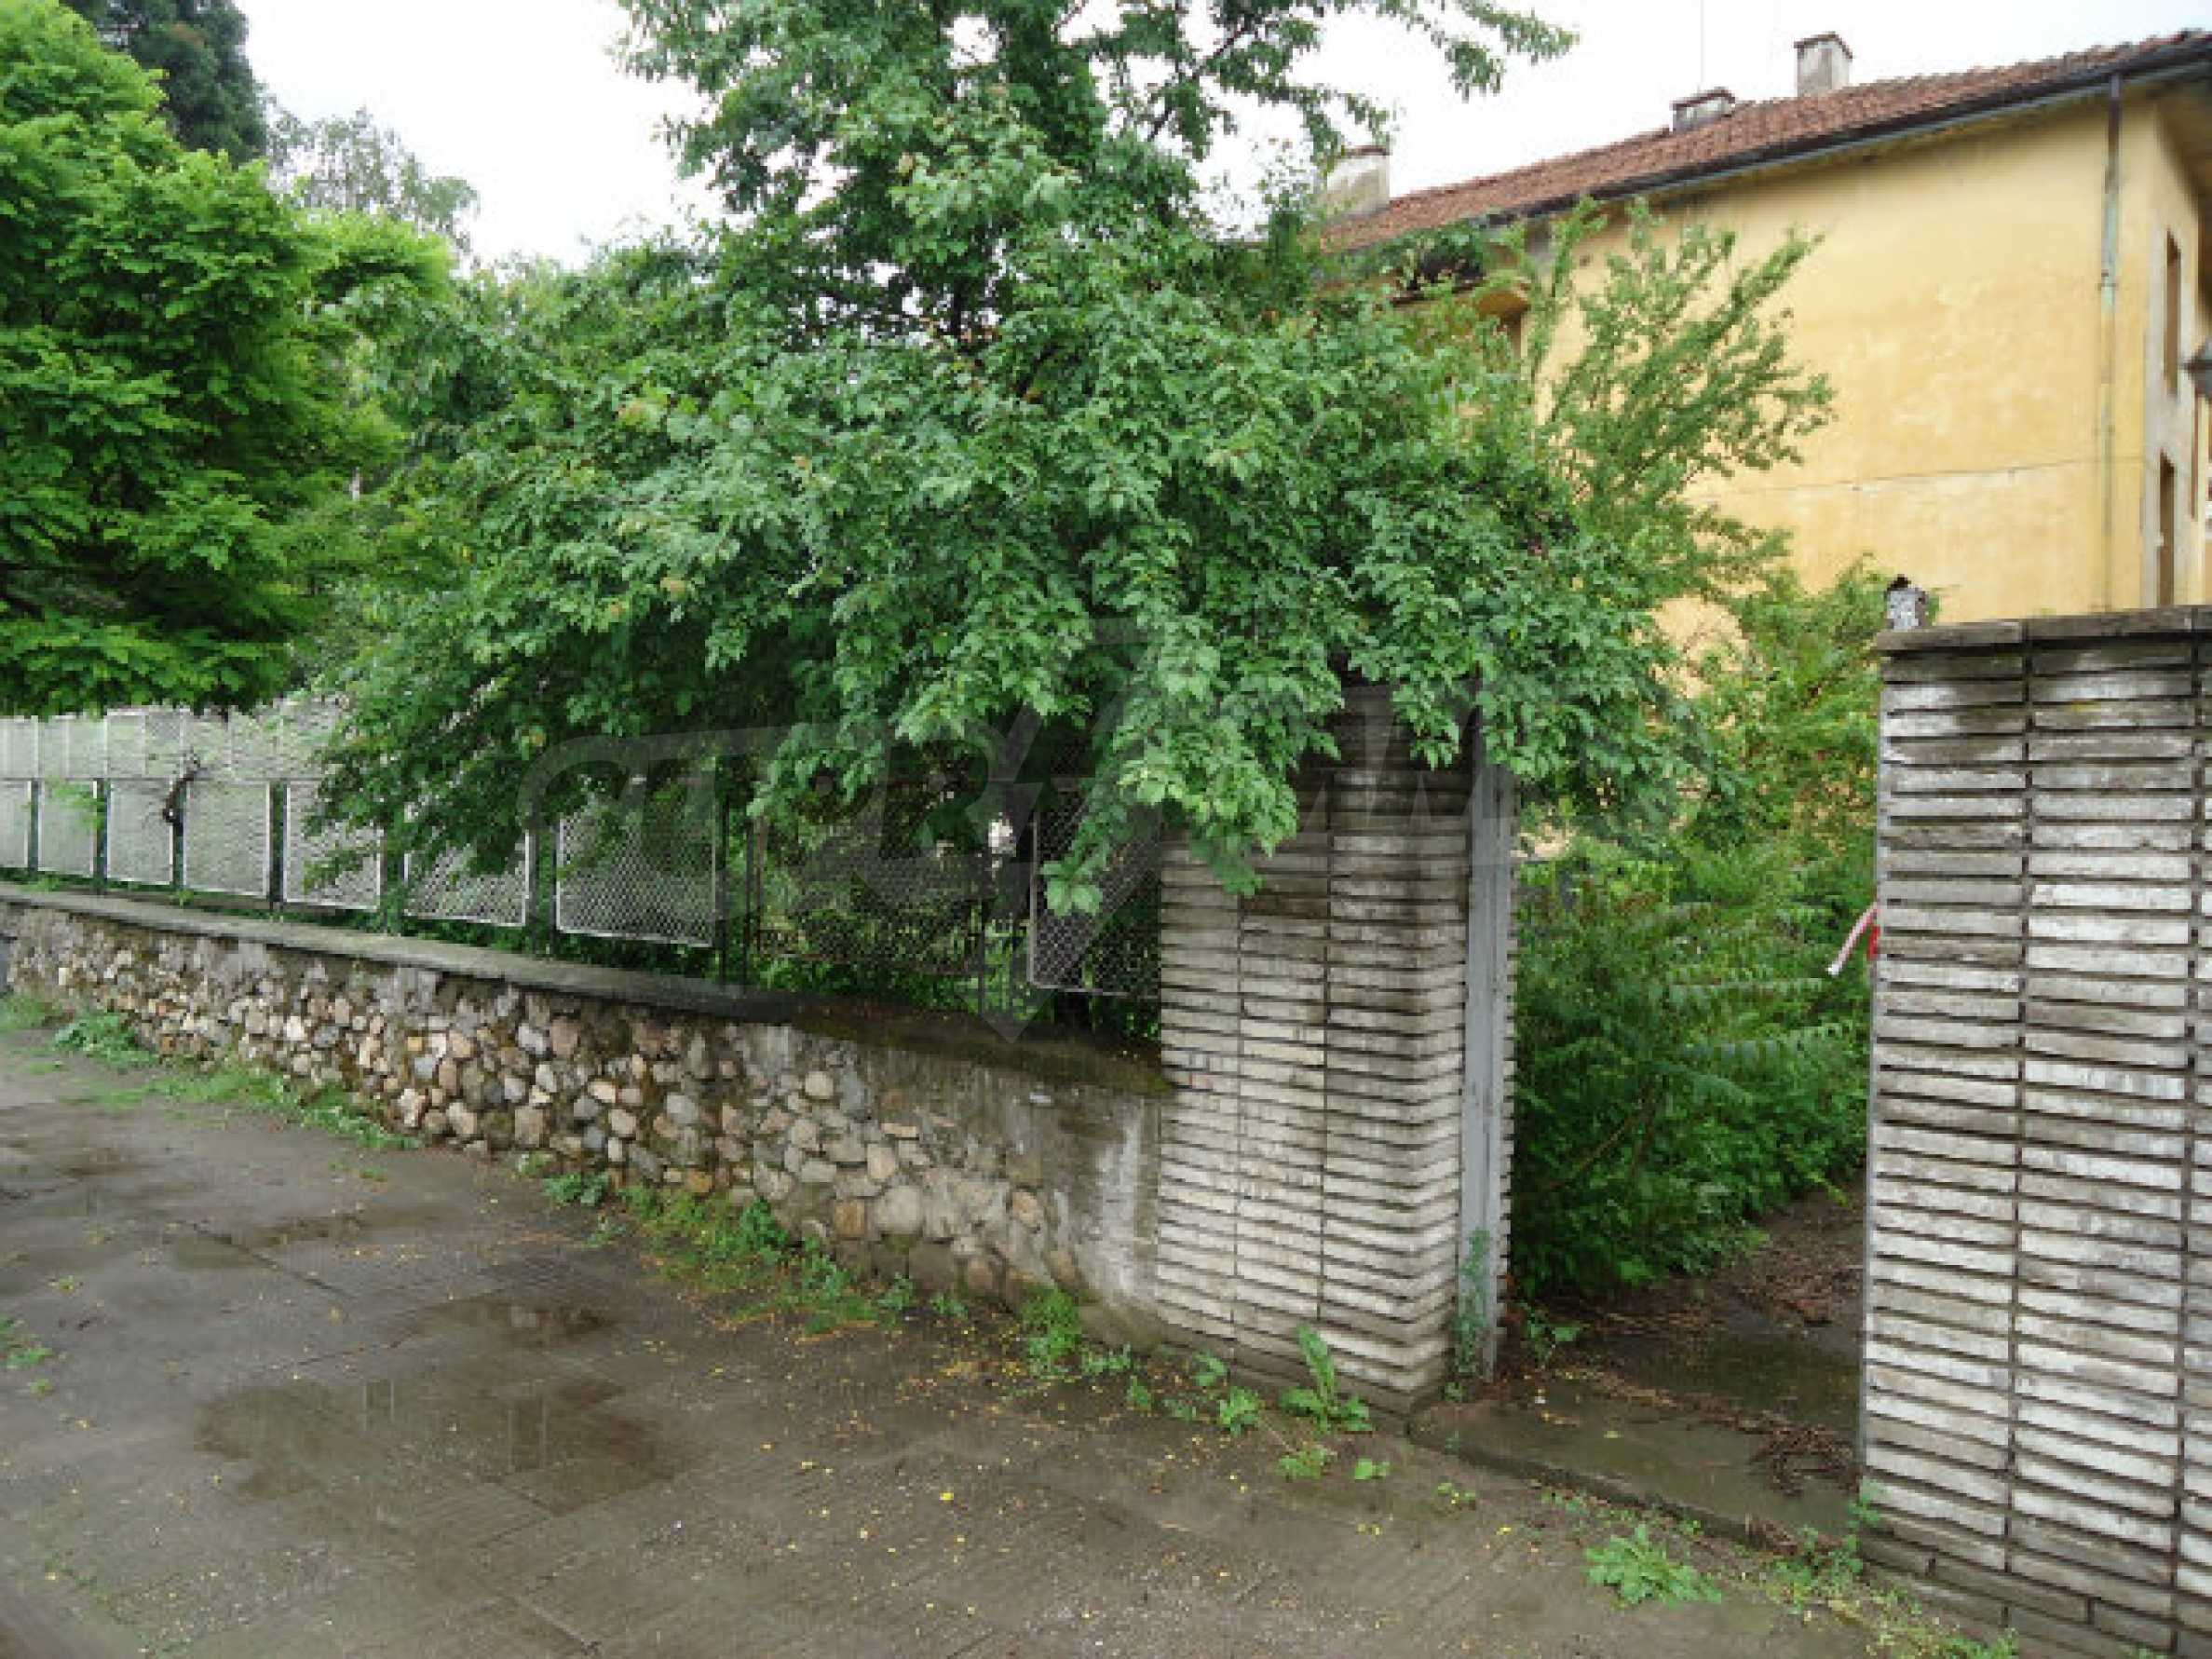 Building with garden area in the town of Kyustendil 2